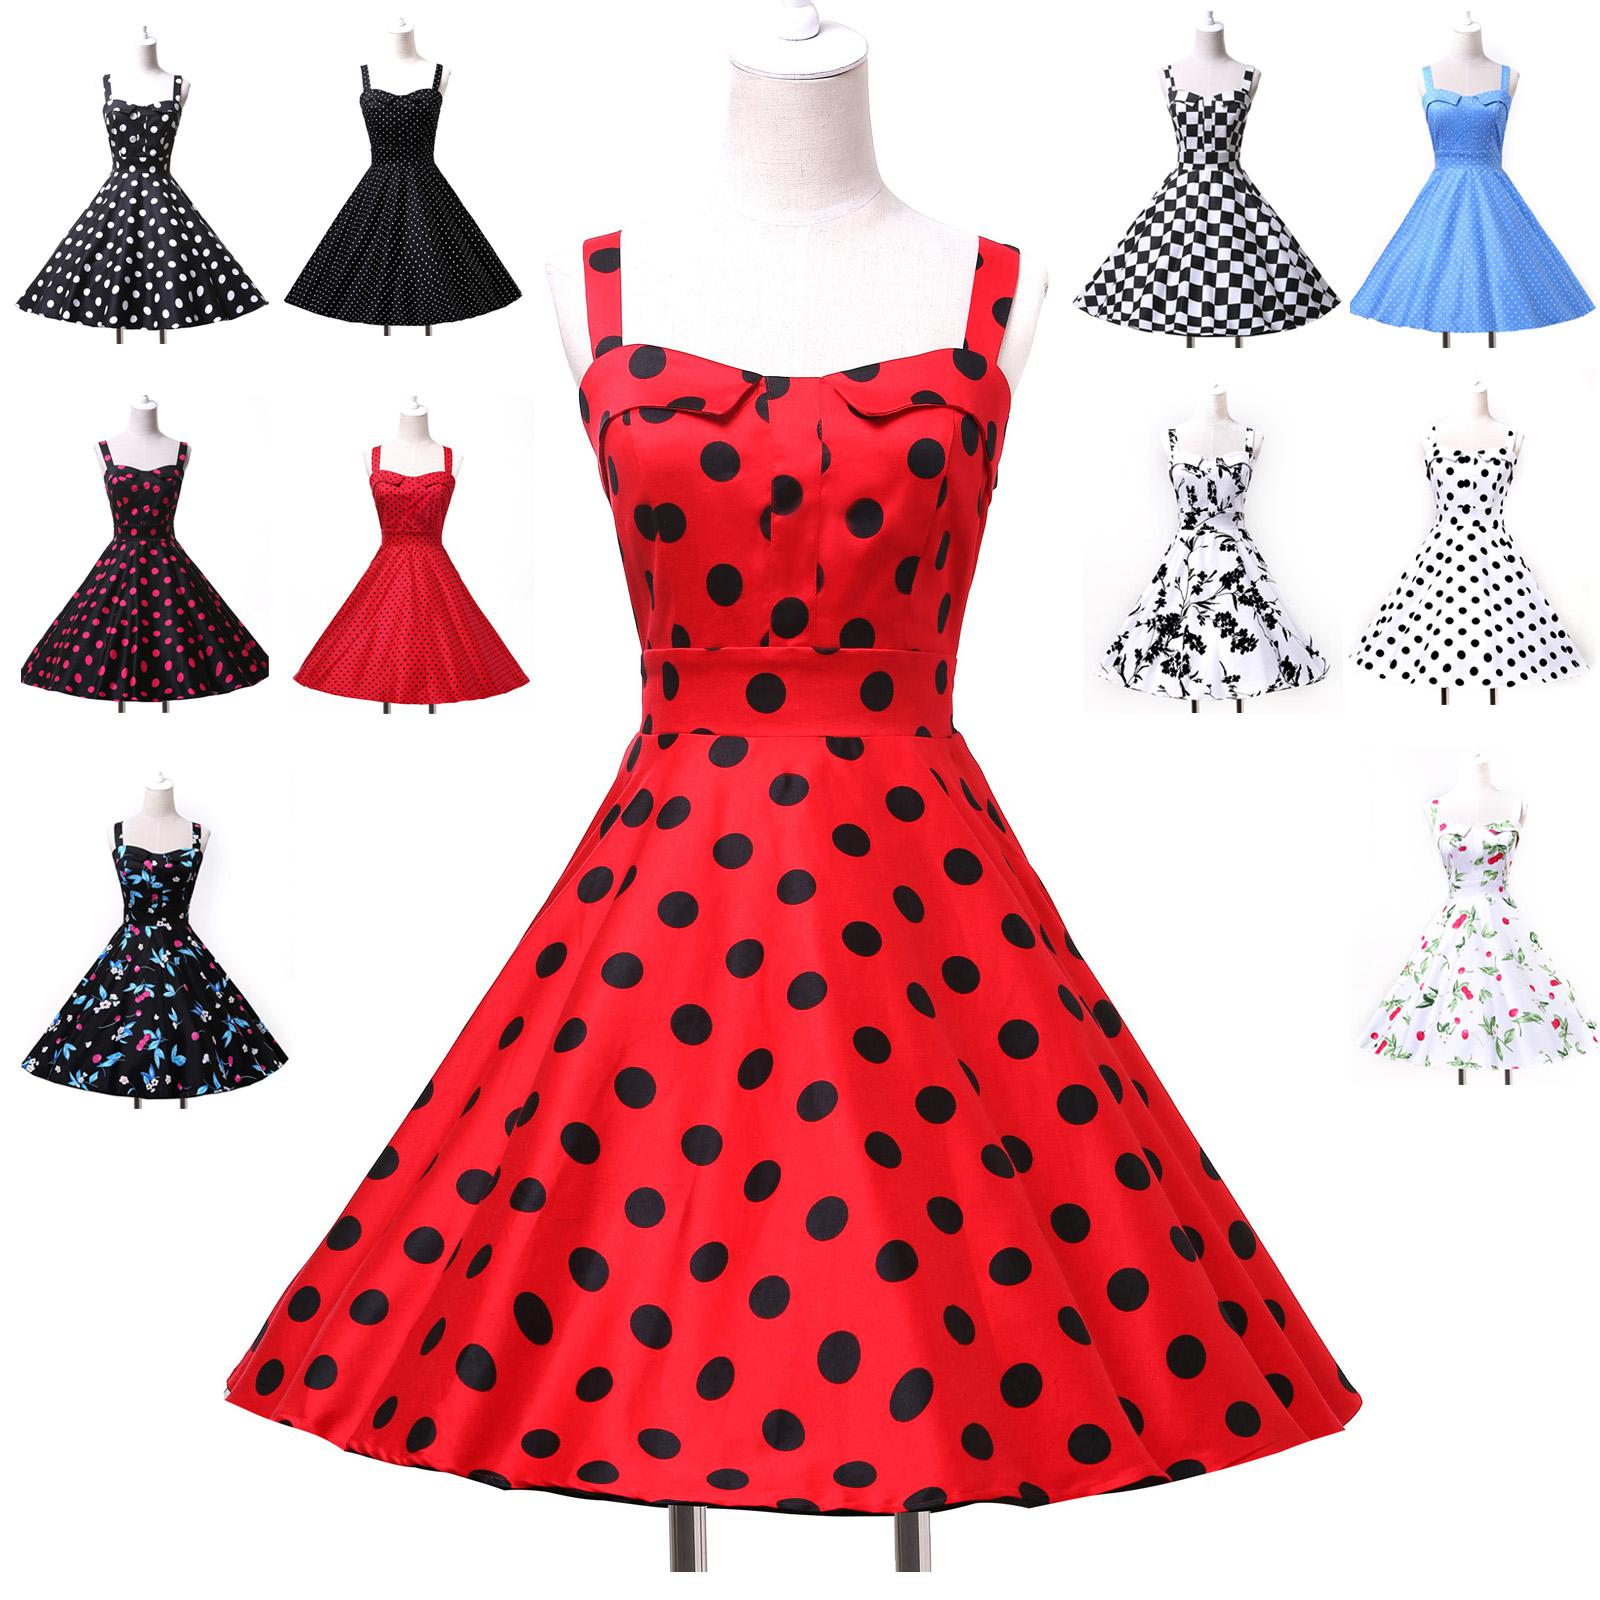 2014 Pin Up Retro Vintage Rockabilly 50s 60s Polka Dot Floral ...